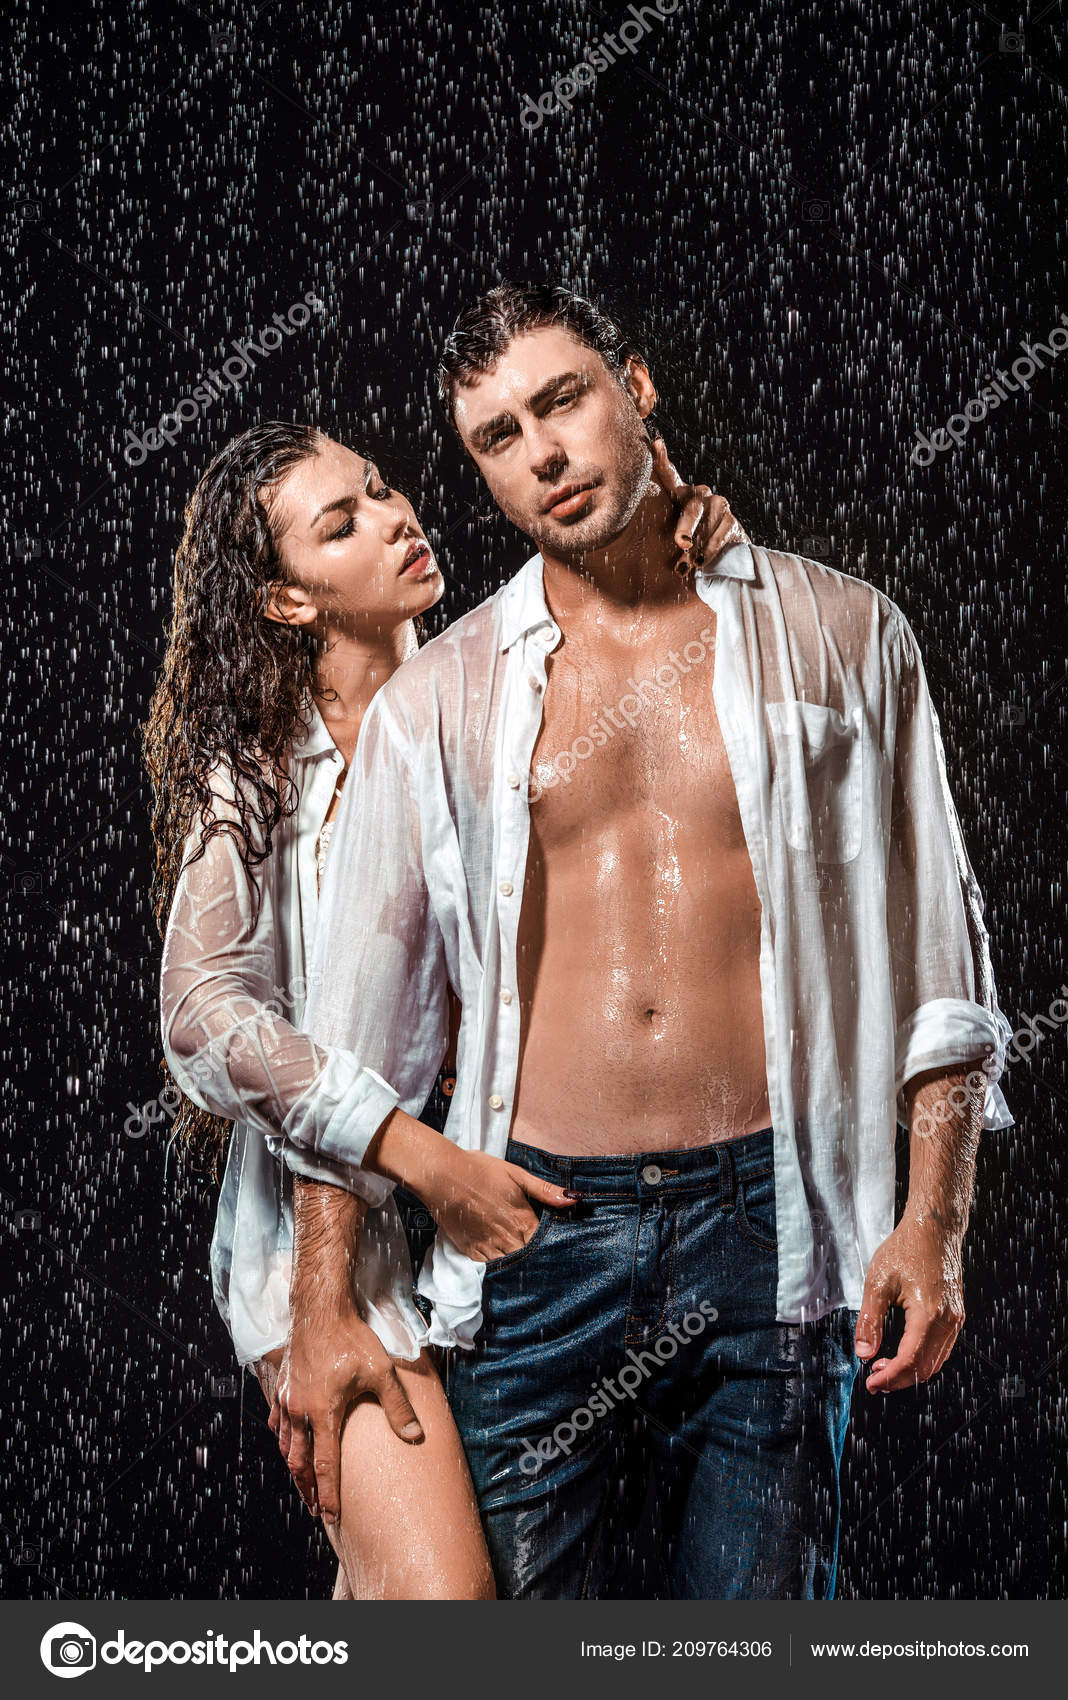 Agree with photos of sexy model couple really